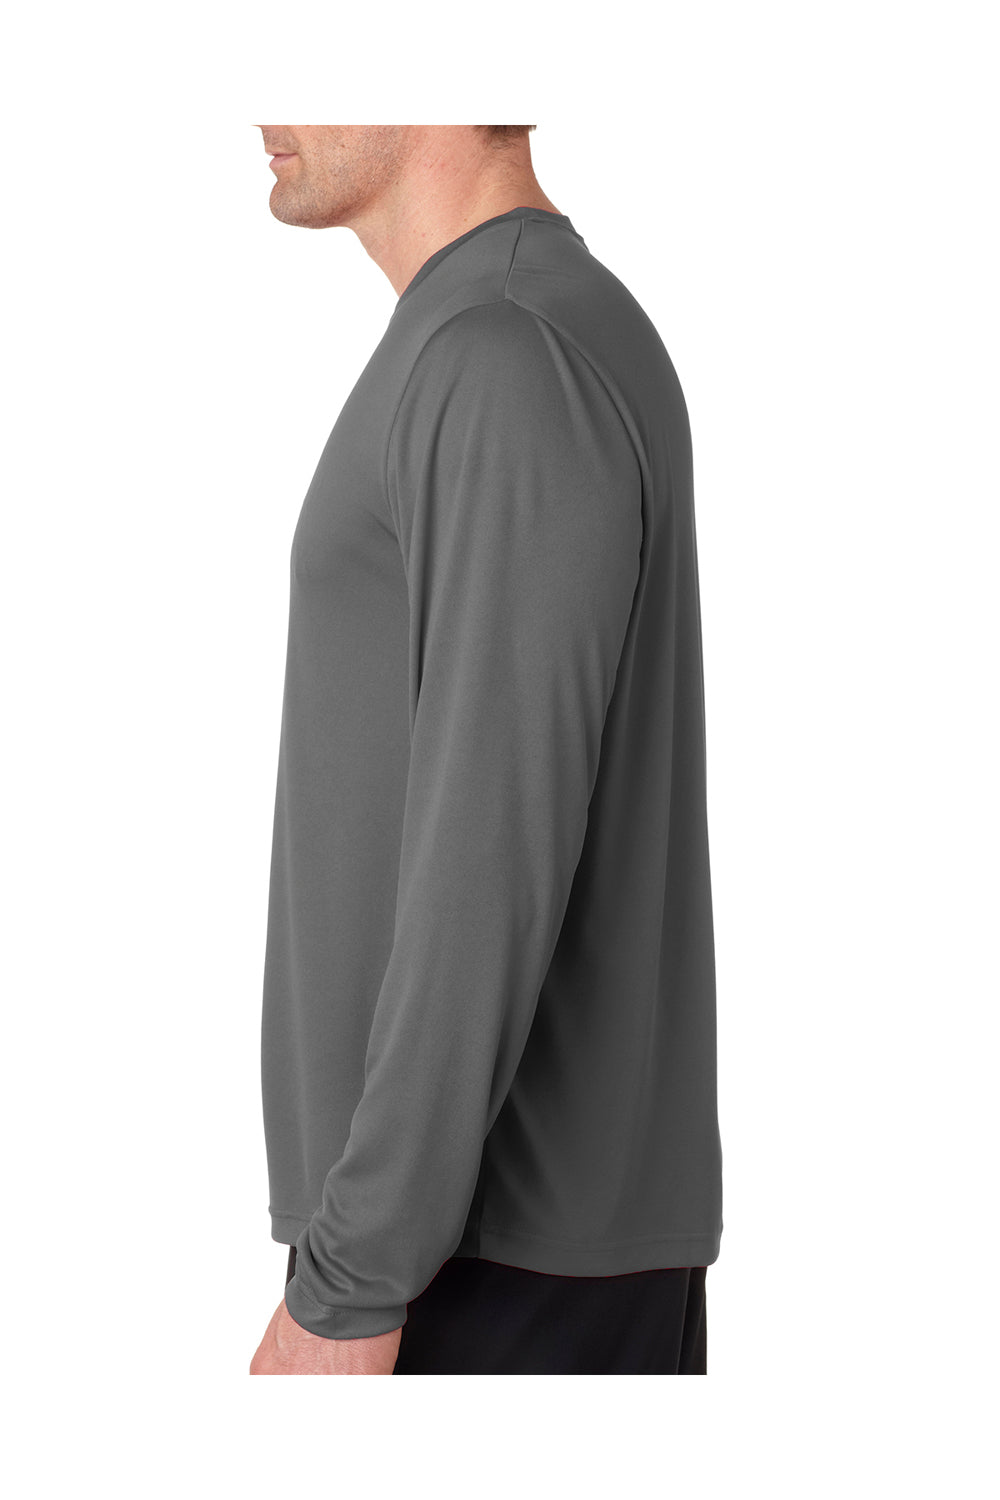 Hanes 482L Mens Cool DRI FreshIQ Moisture Wicking Long Sleeve Crewneck T-Shirt Graphite Grey Side